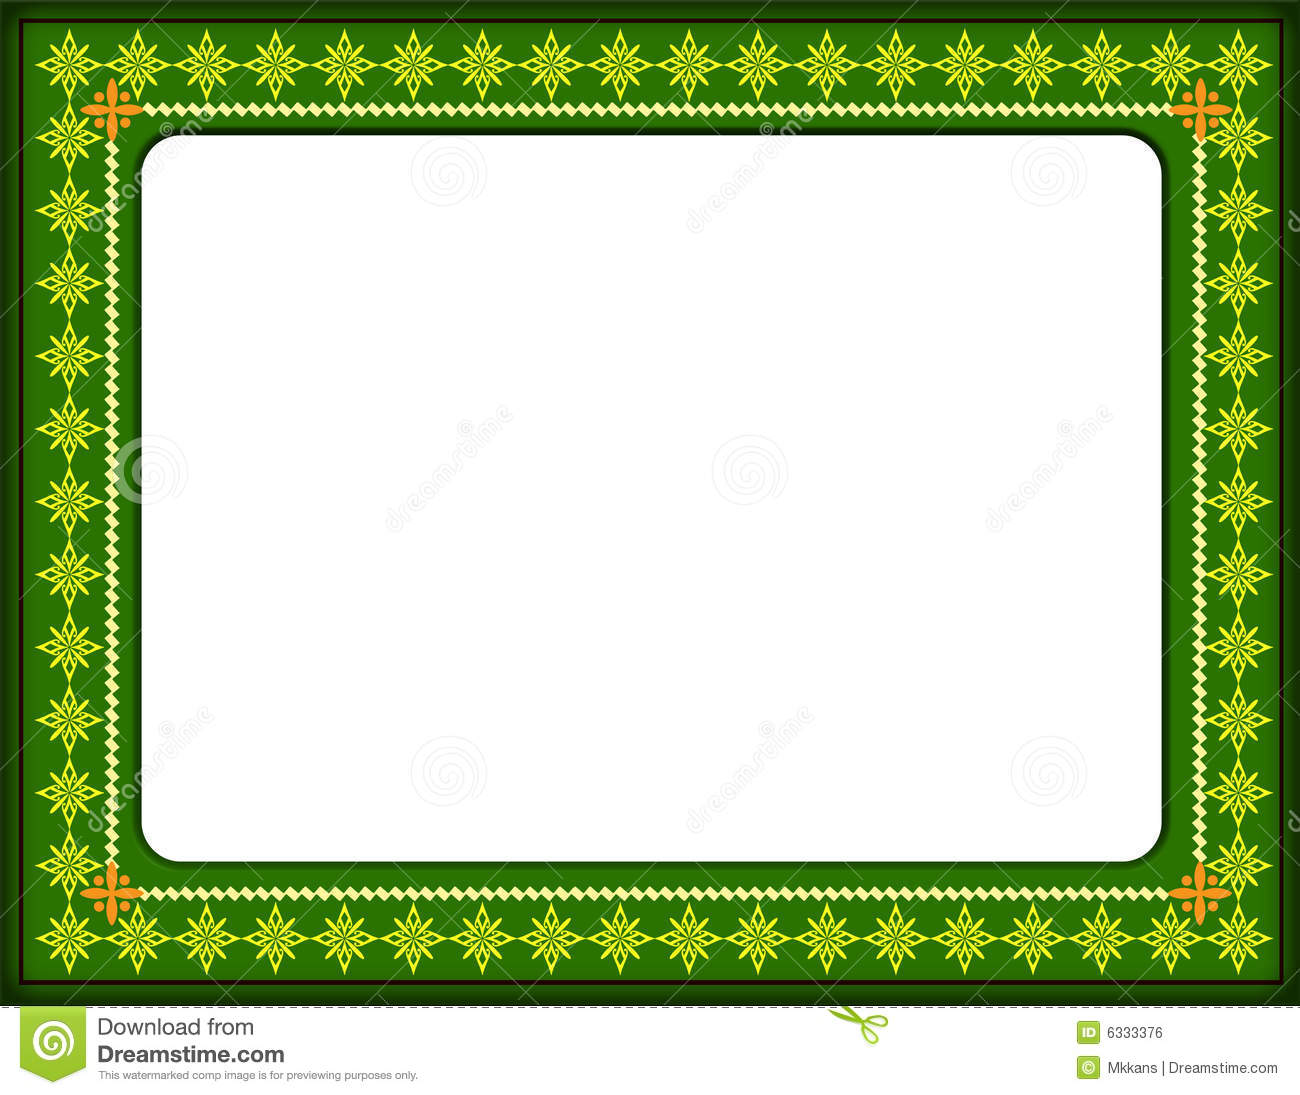 14 borders vector green certificate images free vector. Black Bedroom Furniture Sets. Home Design Ideas